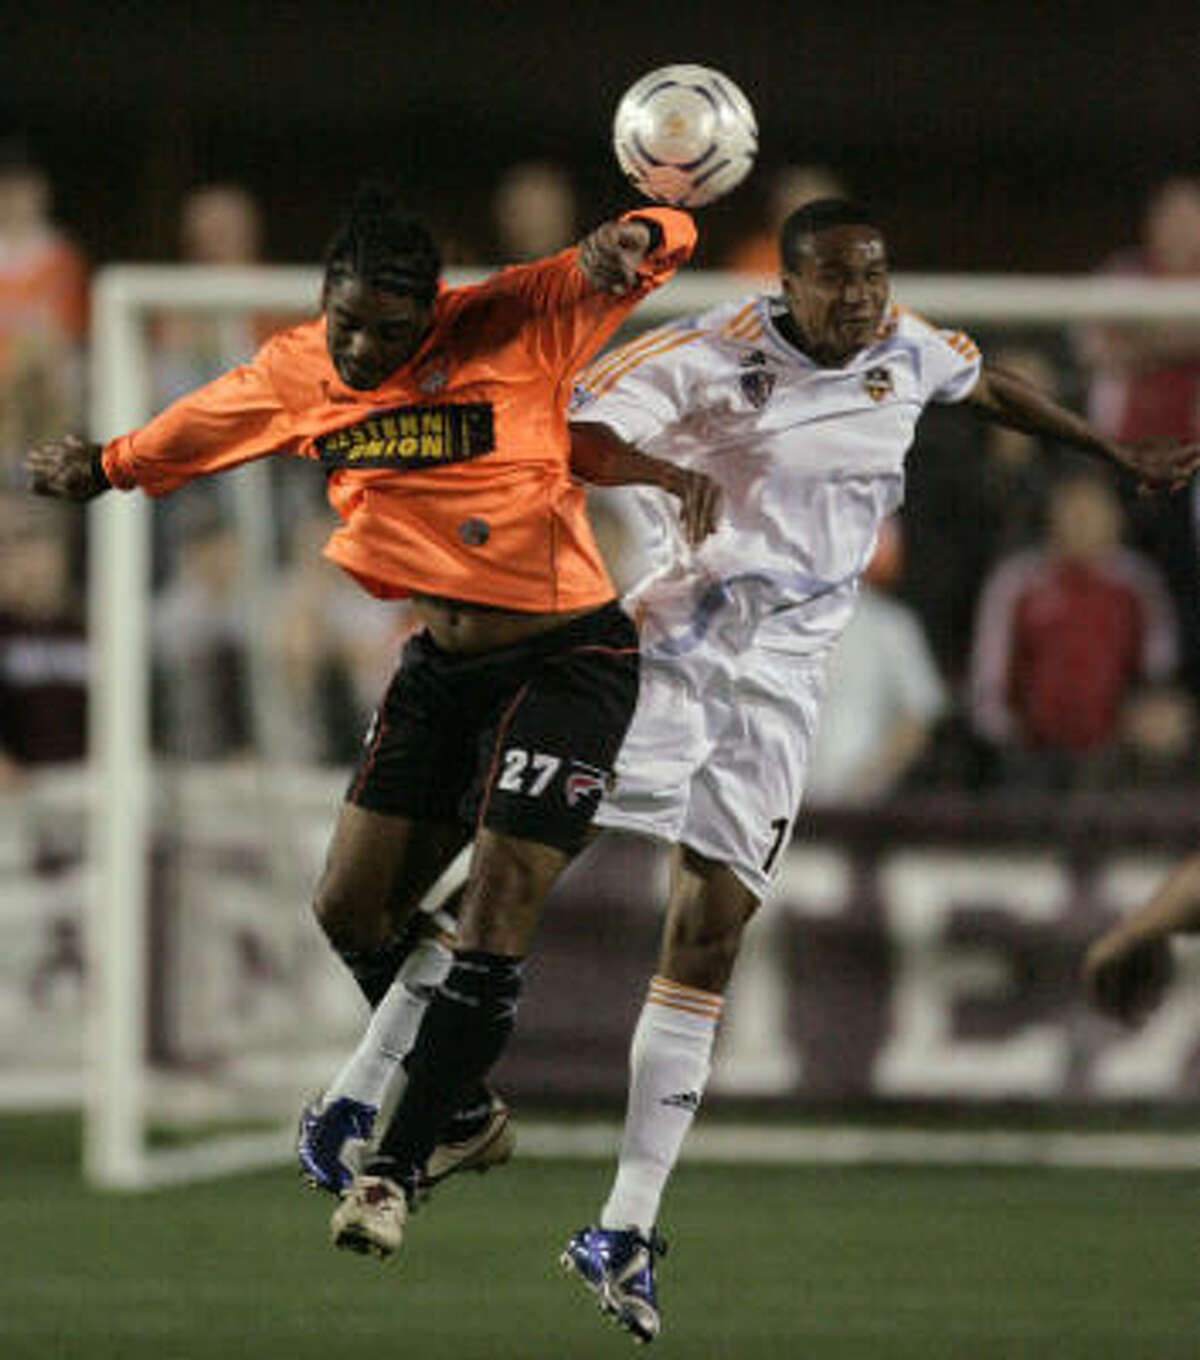 Houston Dynamo midfielder Ricardo Clark, right, battles Puntarenas FC's Max Sanchez in a March soccer match in College Station. Clark and the Dynamo may get a new stadium under a plan being negotiated by the team and Houston.